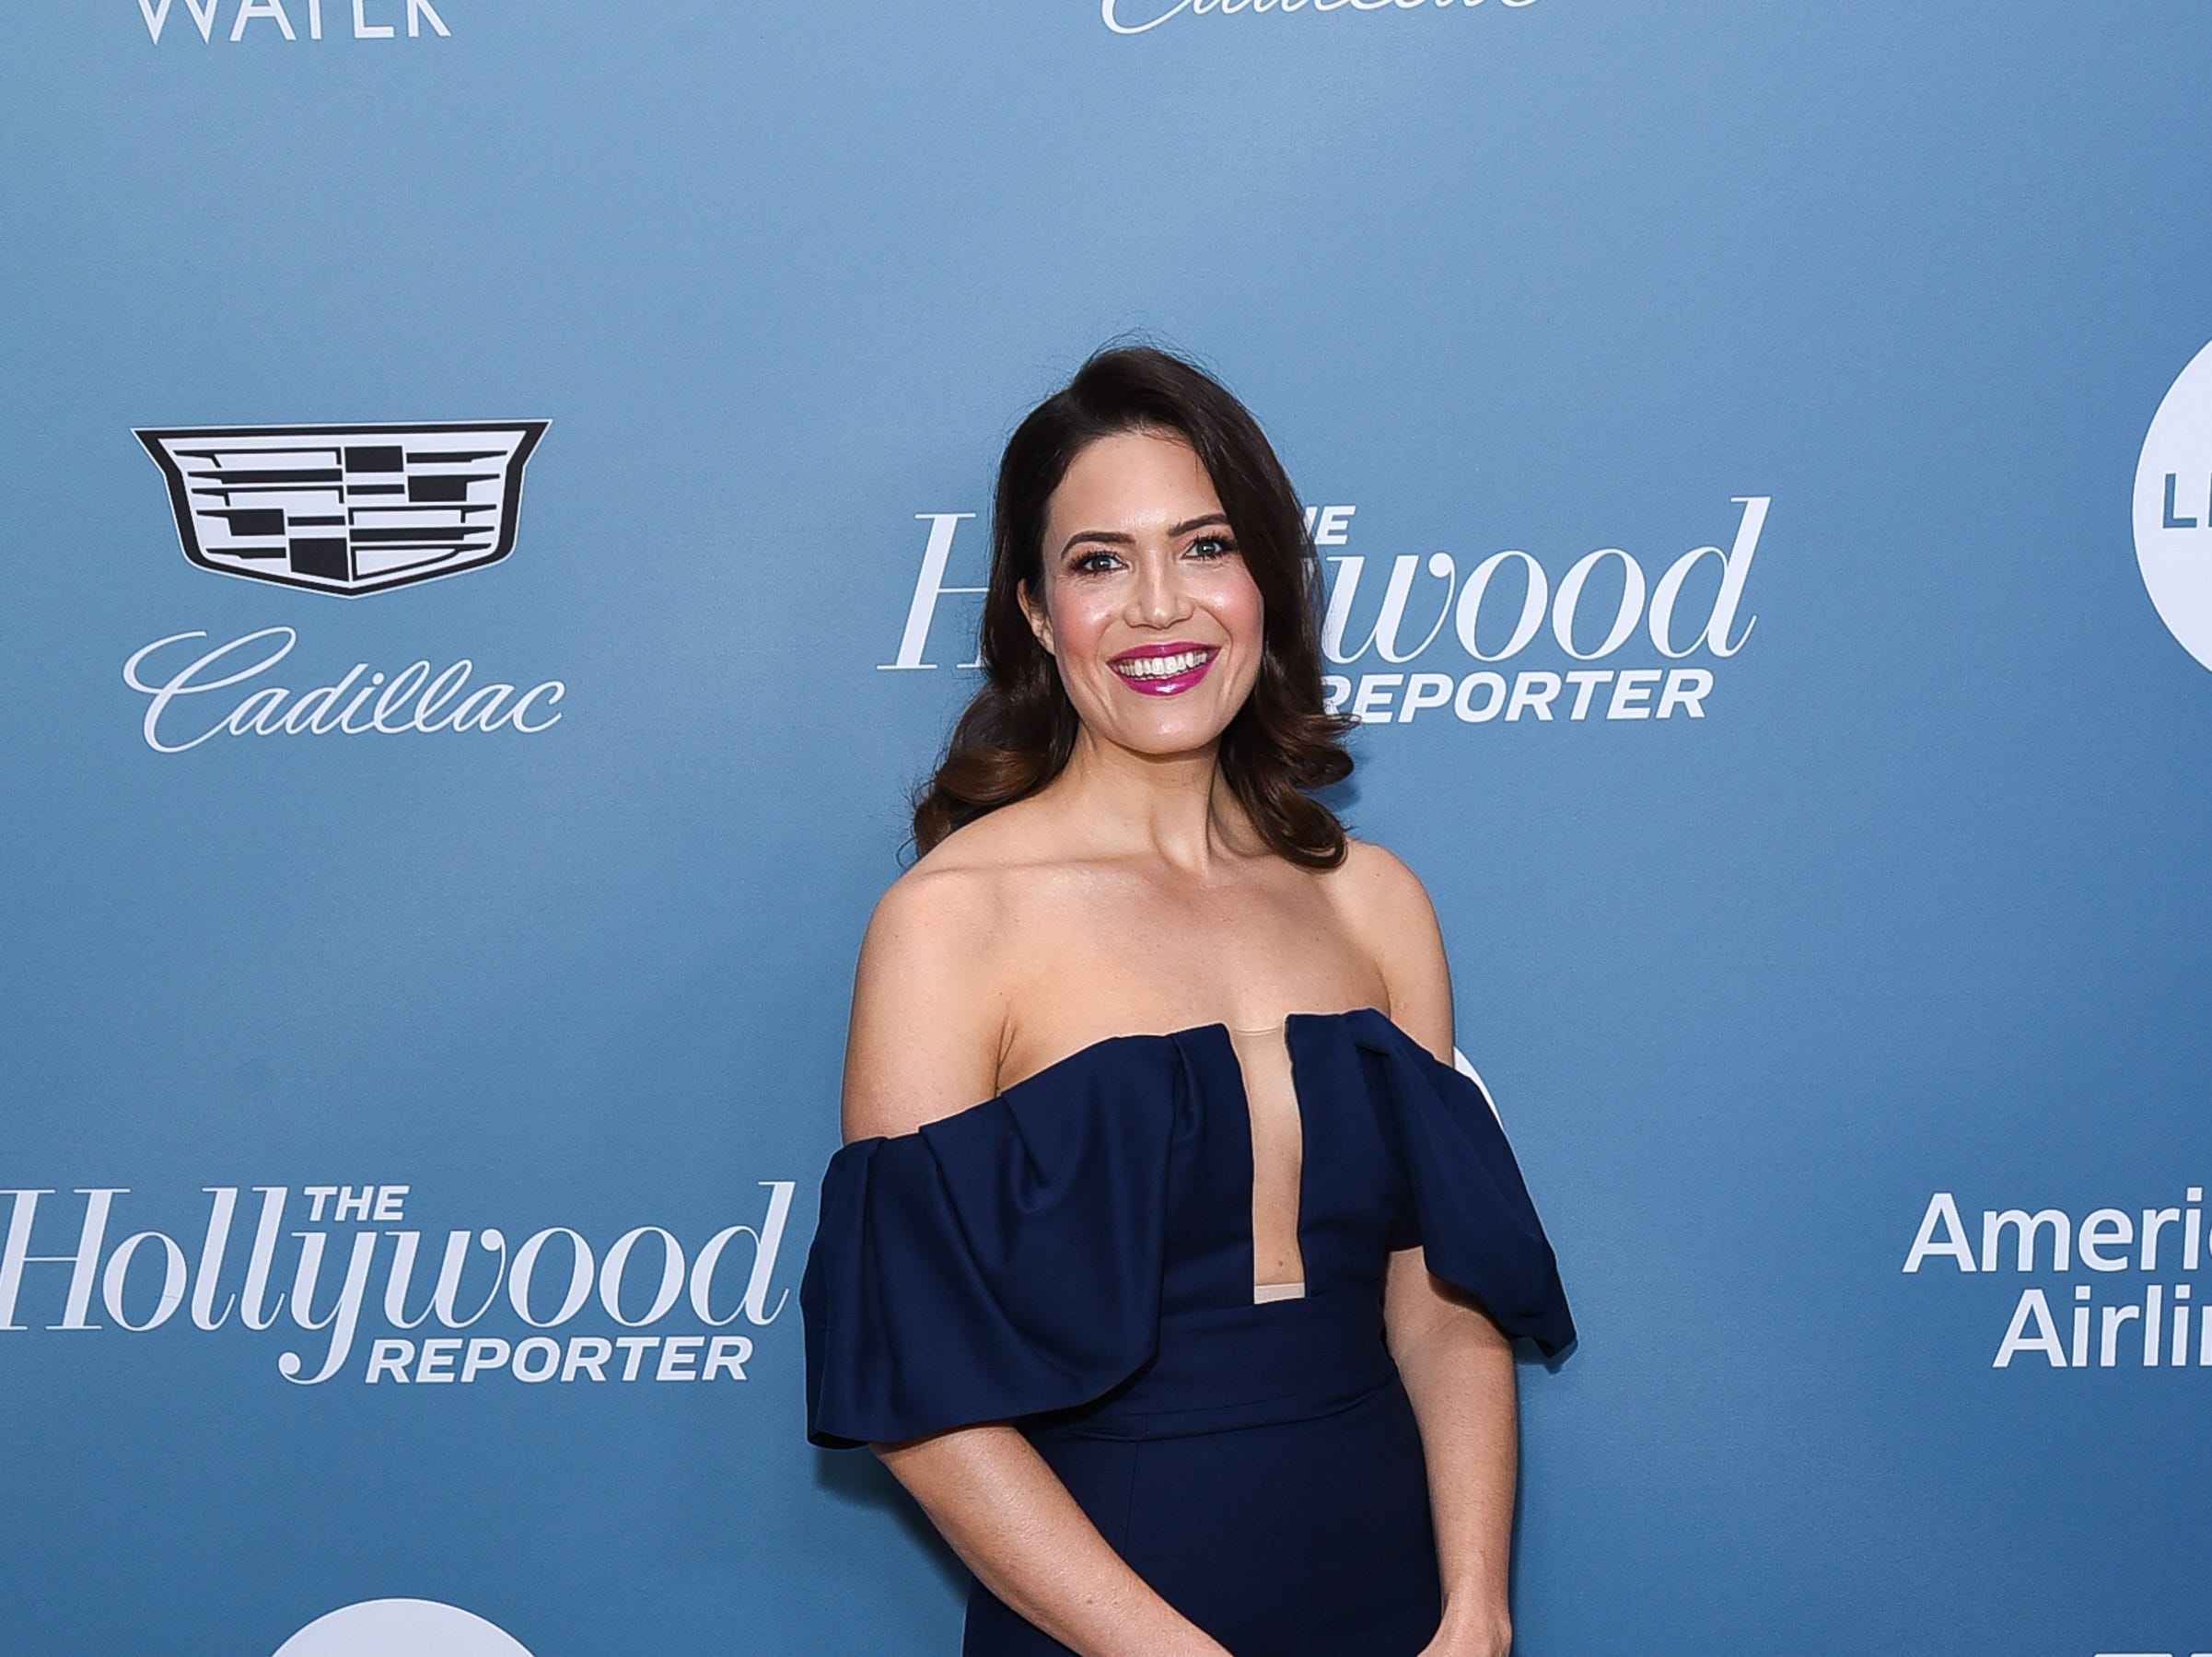 LOS ANGELES, CALIFORNIA - DECEMBER 05: Mandy Moore attends The Hollywood Reporter's Power 100 Women In Entertainment at Milk Studios on December 05, 2018 in Los Angeles, California. (Photo by Presley Ann/Getty Images) ORG XMIT: 775264723 ORIG FILE ID: 1077817782